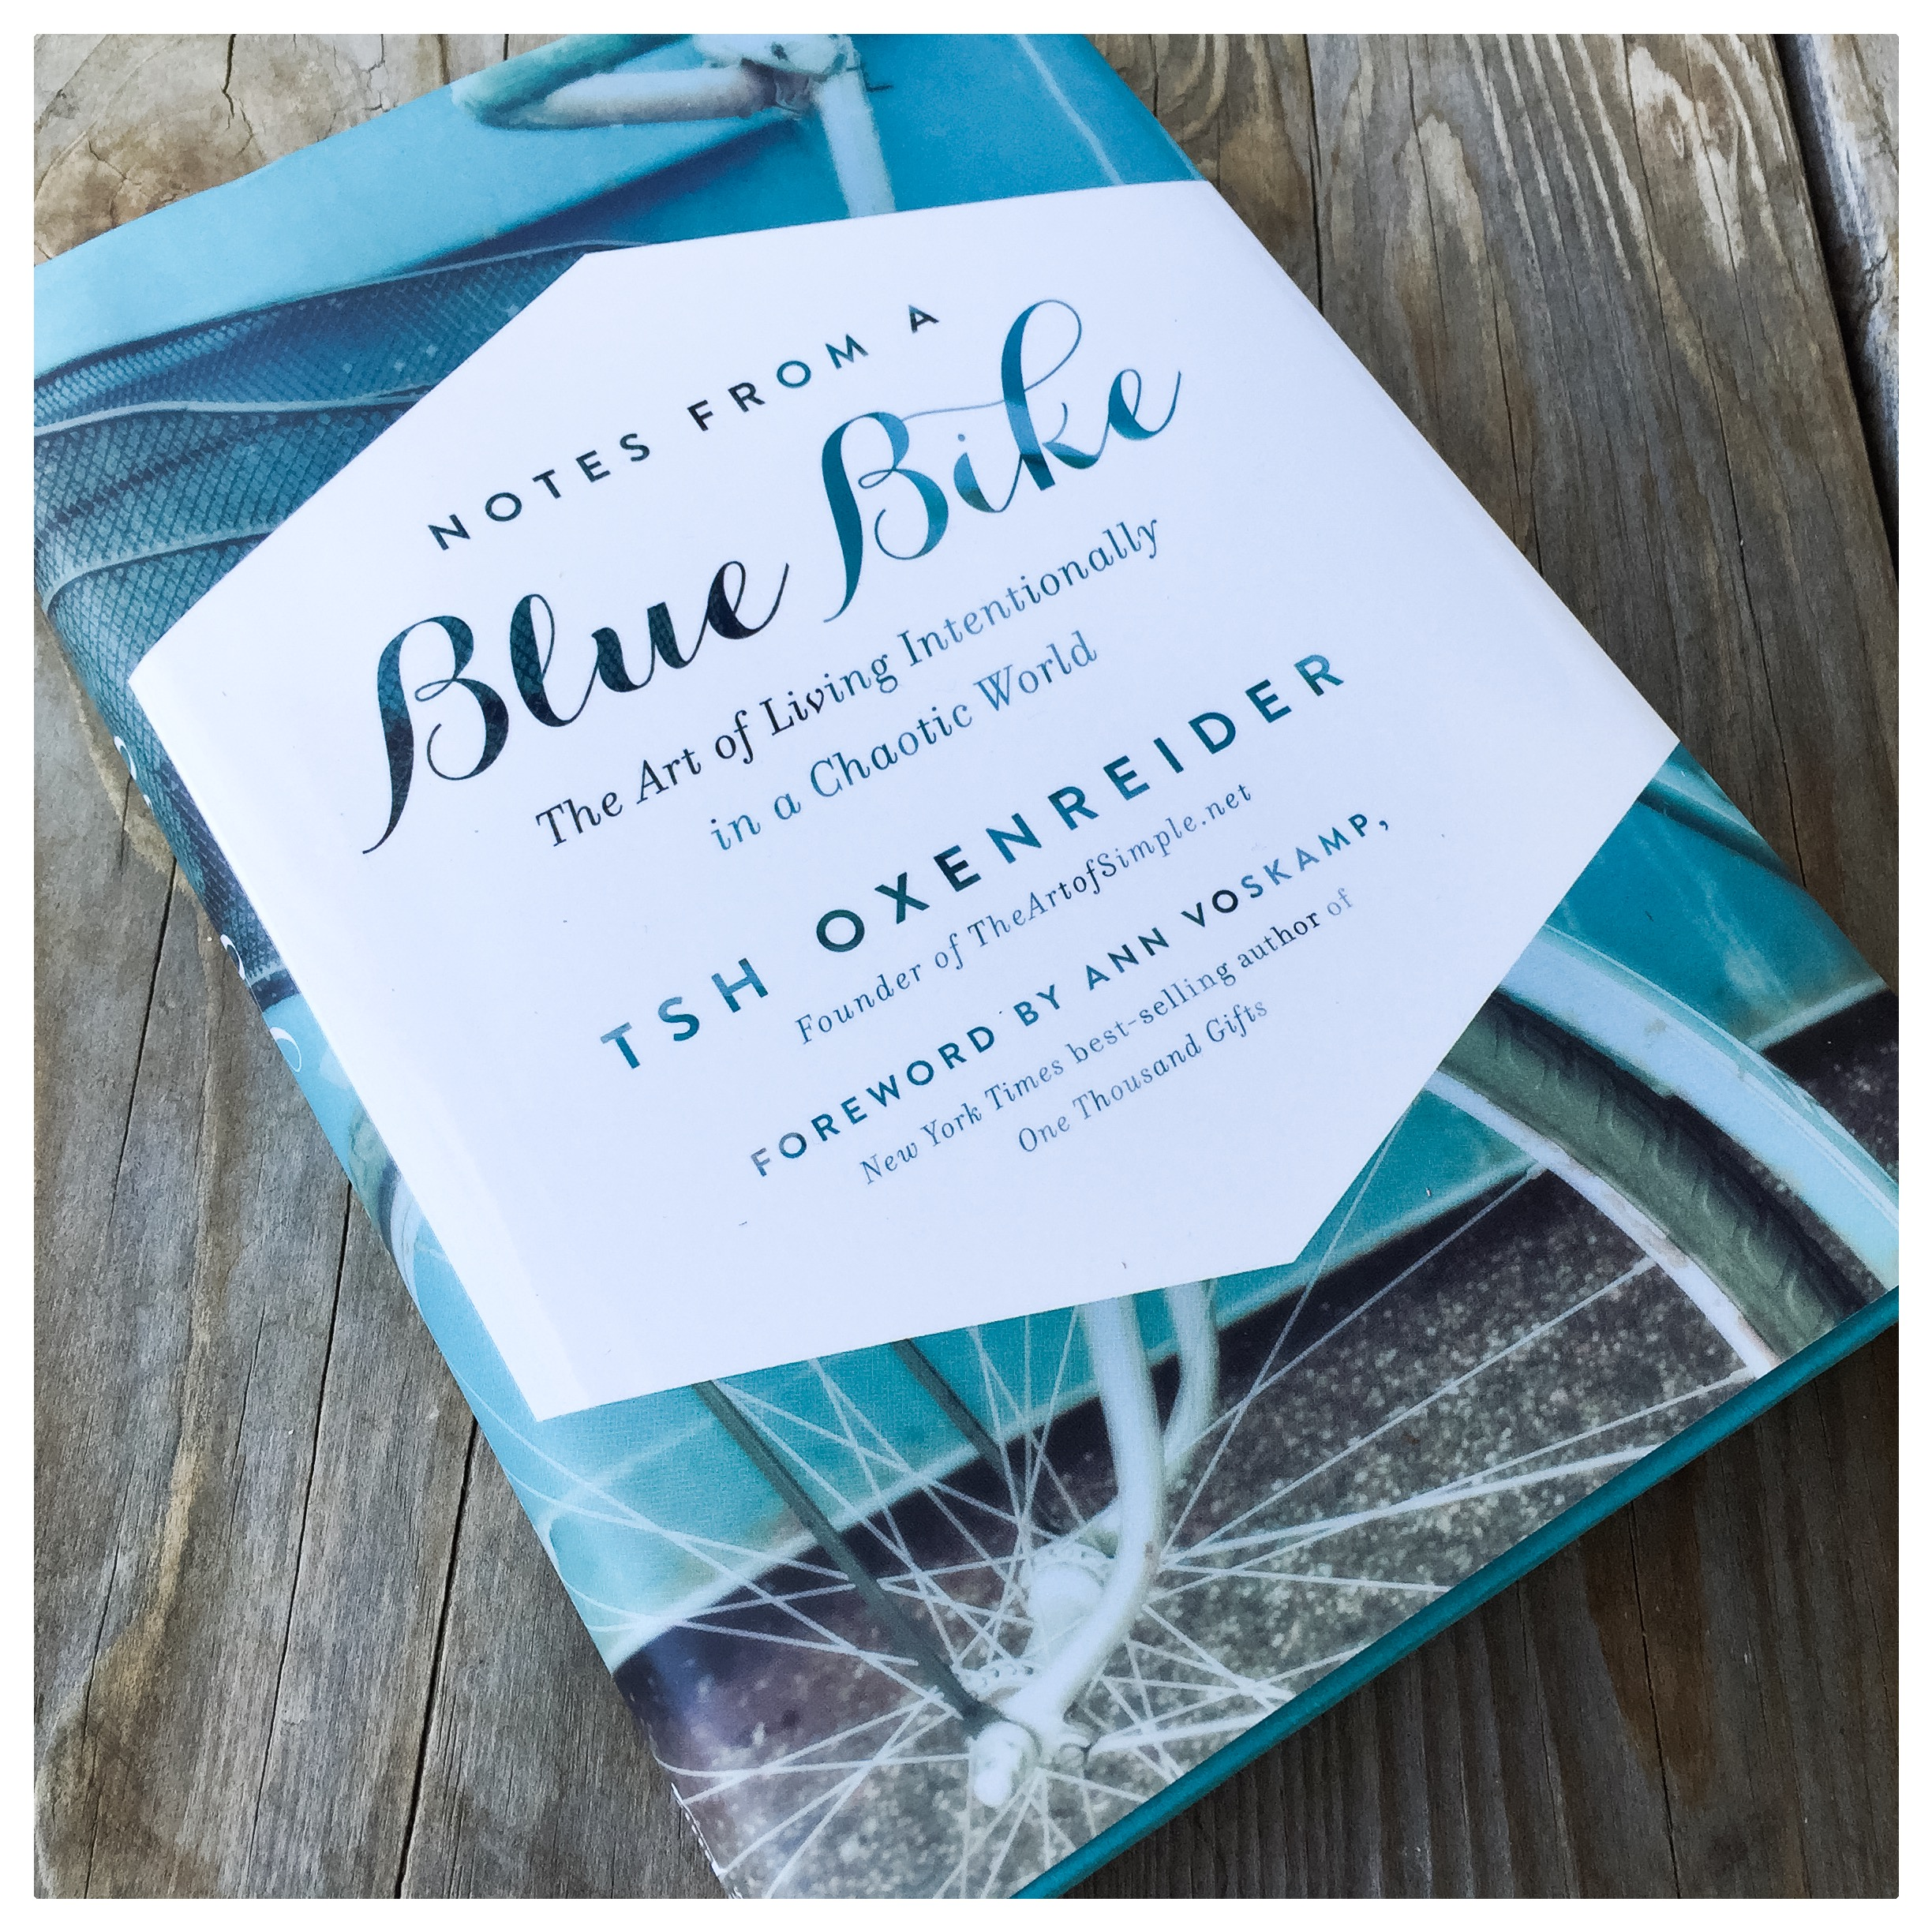 Notes from a Blue Bike has challenged us to slow down and consider what it means to live intentionally. This book is a must read for anyone who sometimes finds the world a bit too chaotic and crazy.